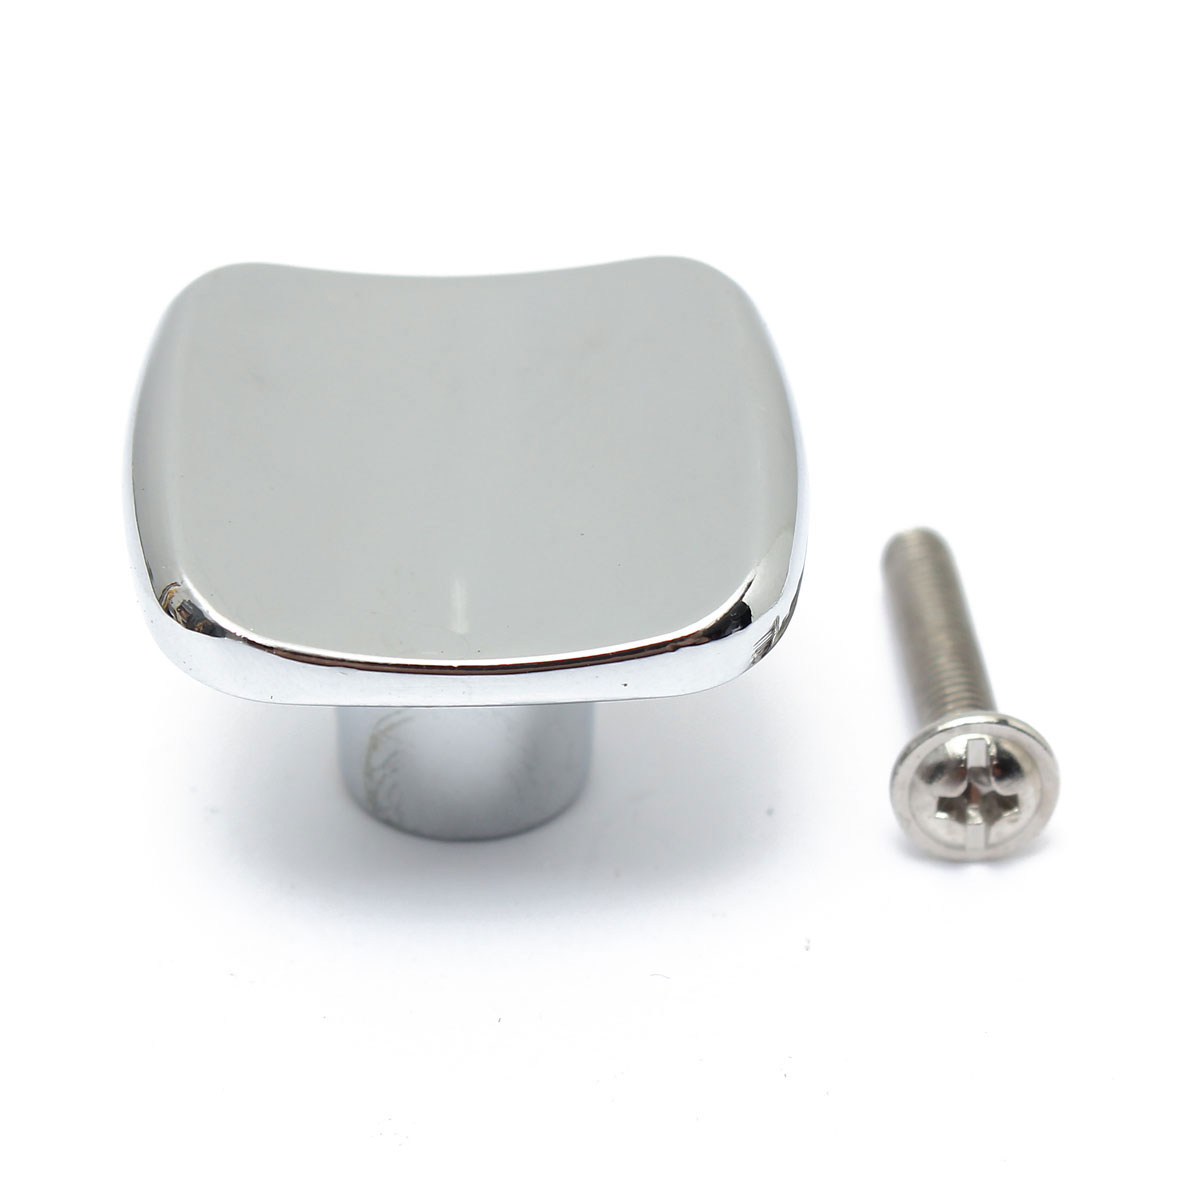 NEW-1-3-16-Satin-Nickel-Kitchen-Cabinet-Hardware-Drawer-Handle-Pull-Square-Knob